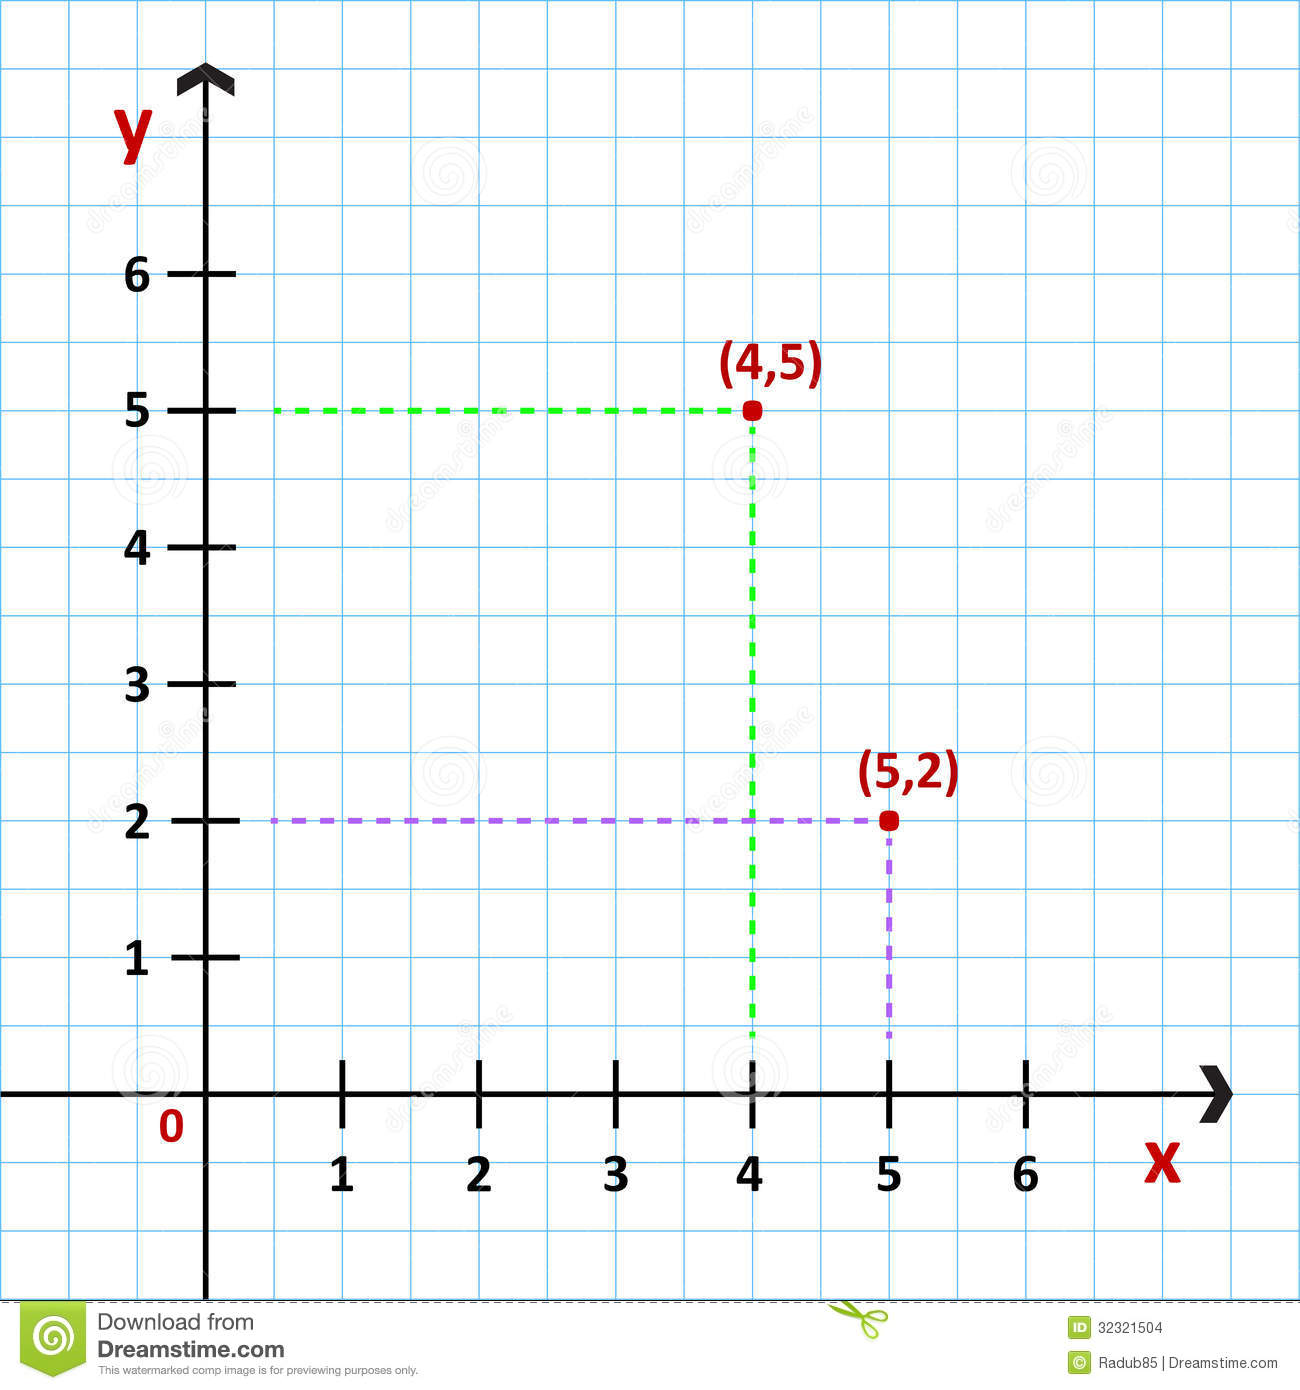 coordinate plane illustration with Stock Images Cartesian Coordinate System Plane Vector Illustration Image32321504 on Polar 12 7p 43005 moreover 62493 tg3n3p3p06 likewise Coordinate systems also 62071 graph xyblnk additionally Ch04 CartesianCoordinateSystem.